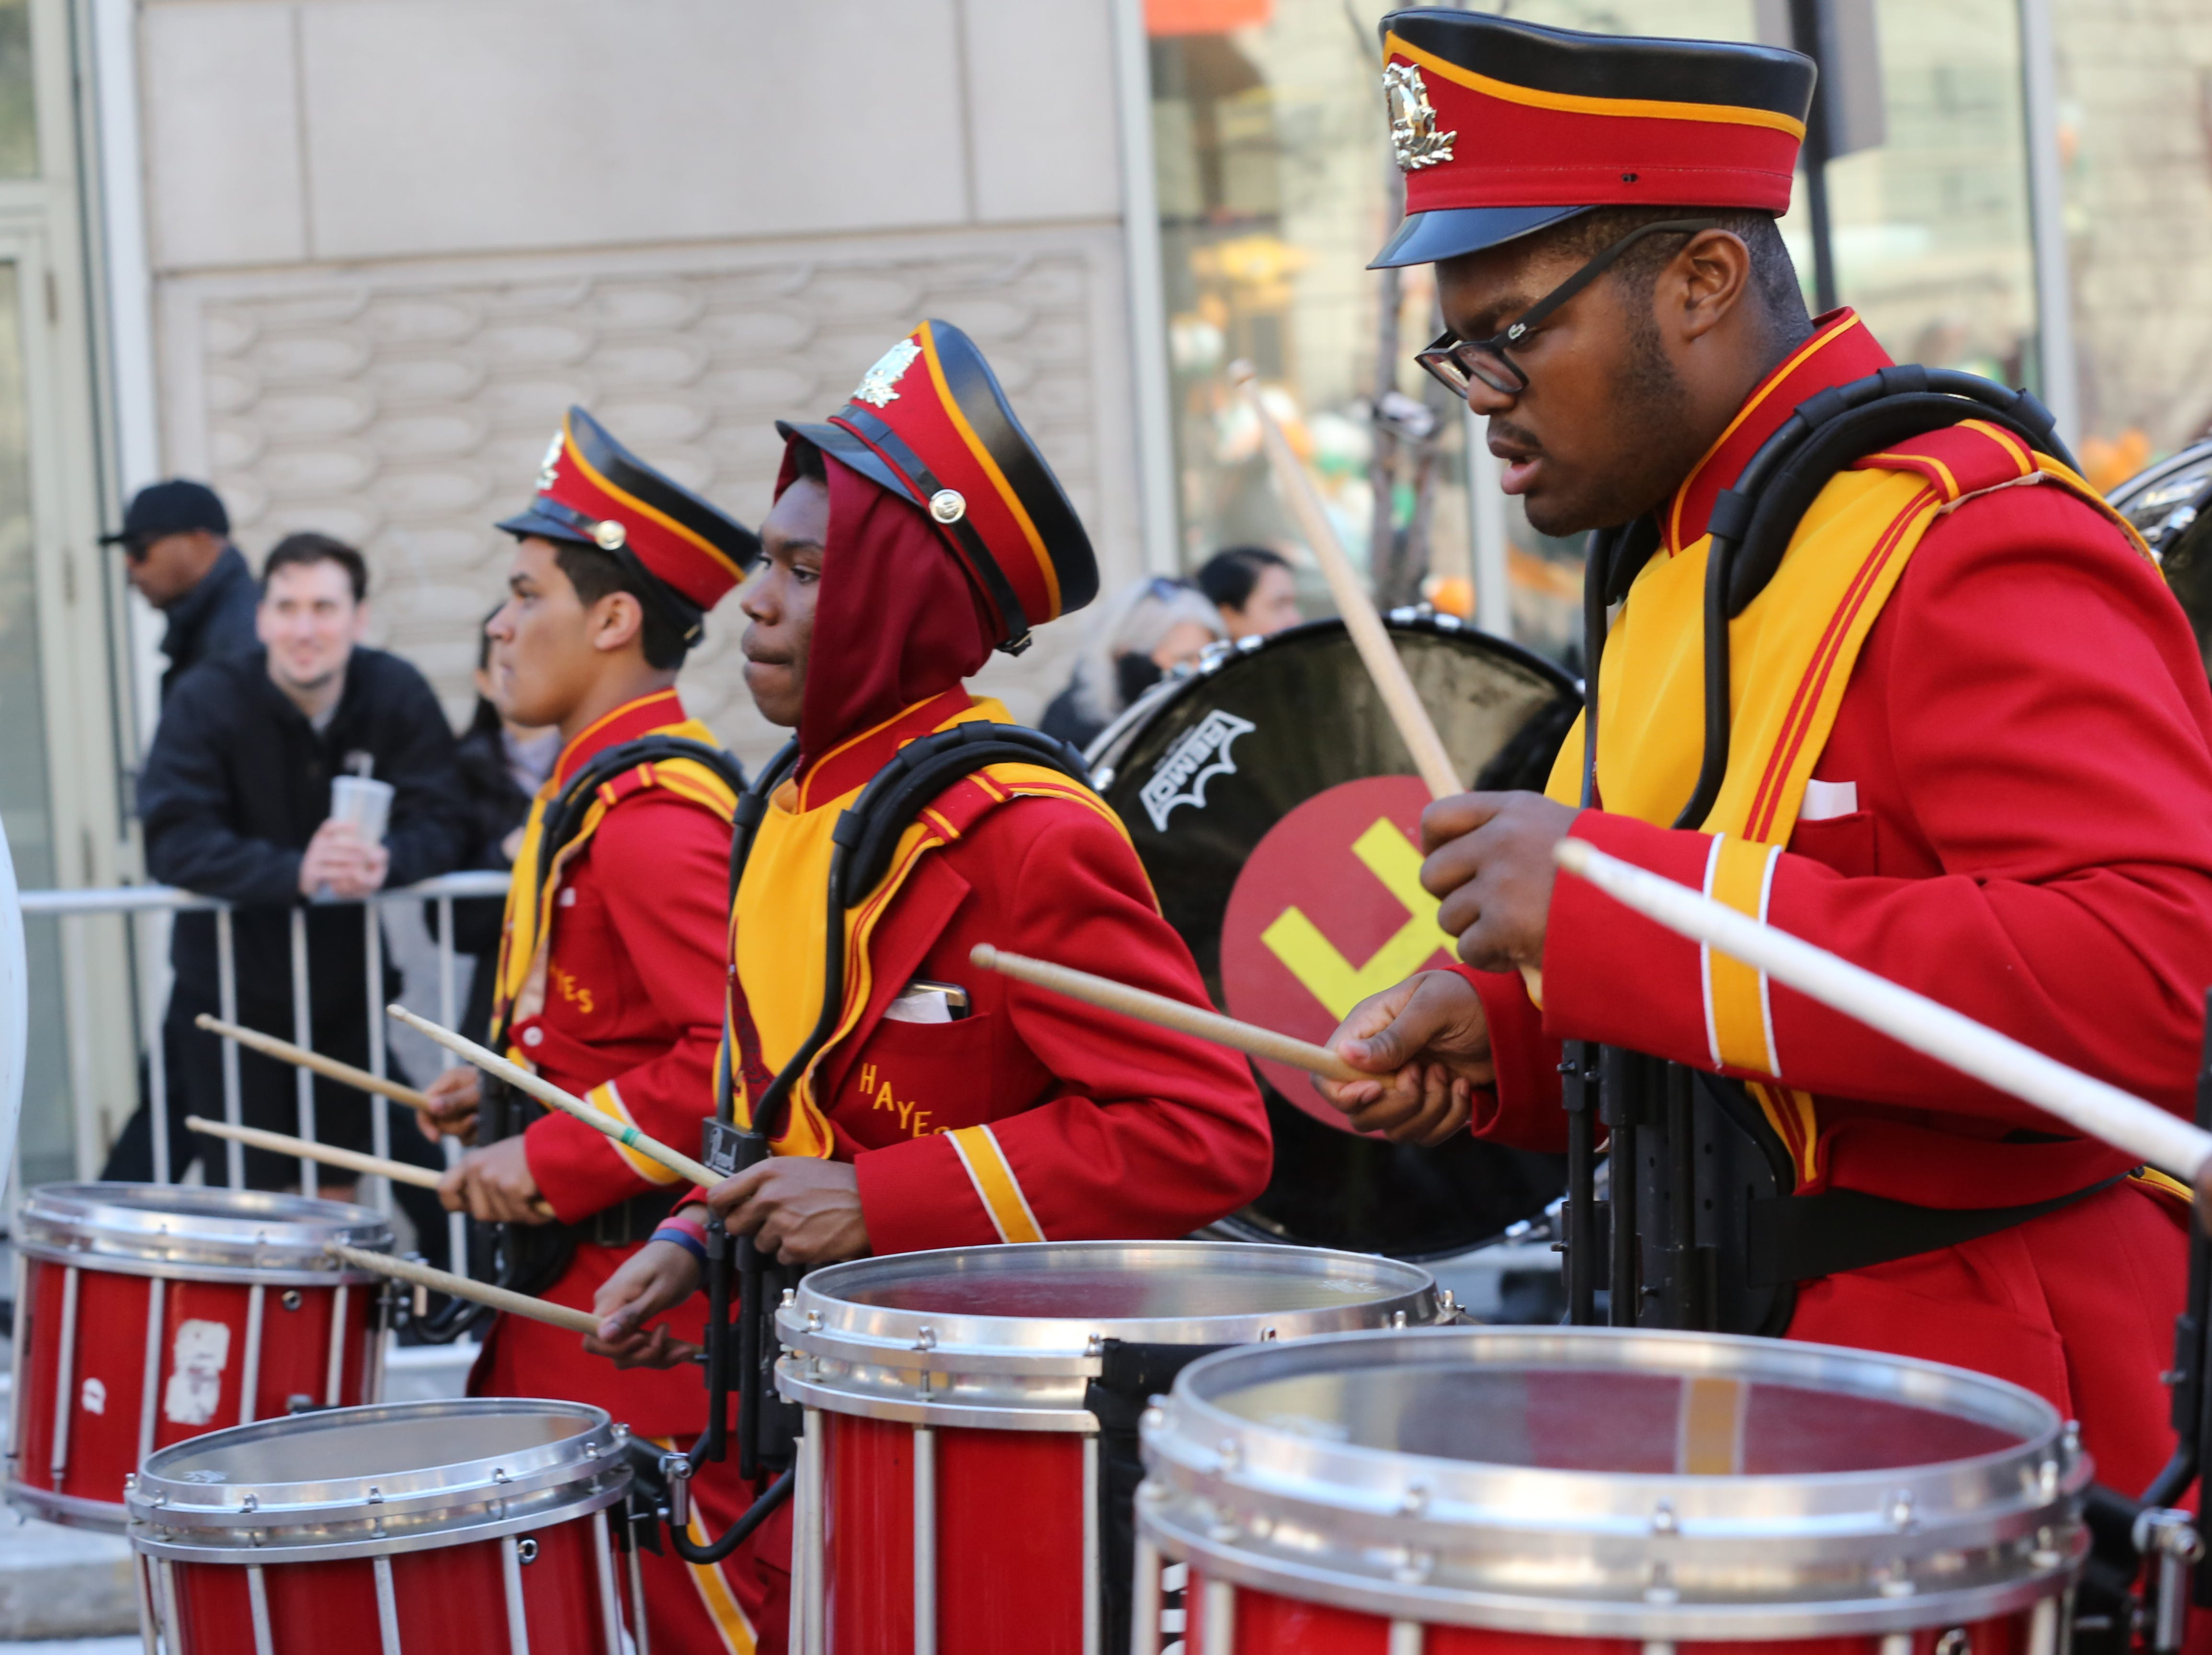 Cardinal Hayes High School marching band performs during the 2019  White Plains St. Patrick's Day parade. The band will march in the NYC parade on March 16, 2019.